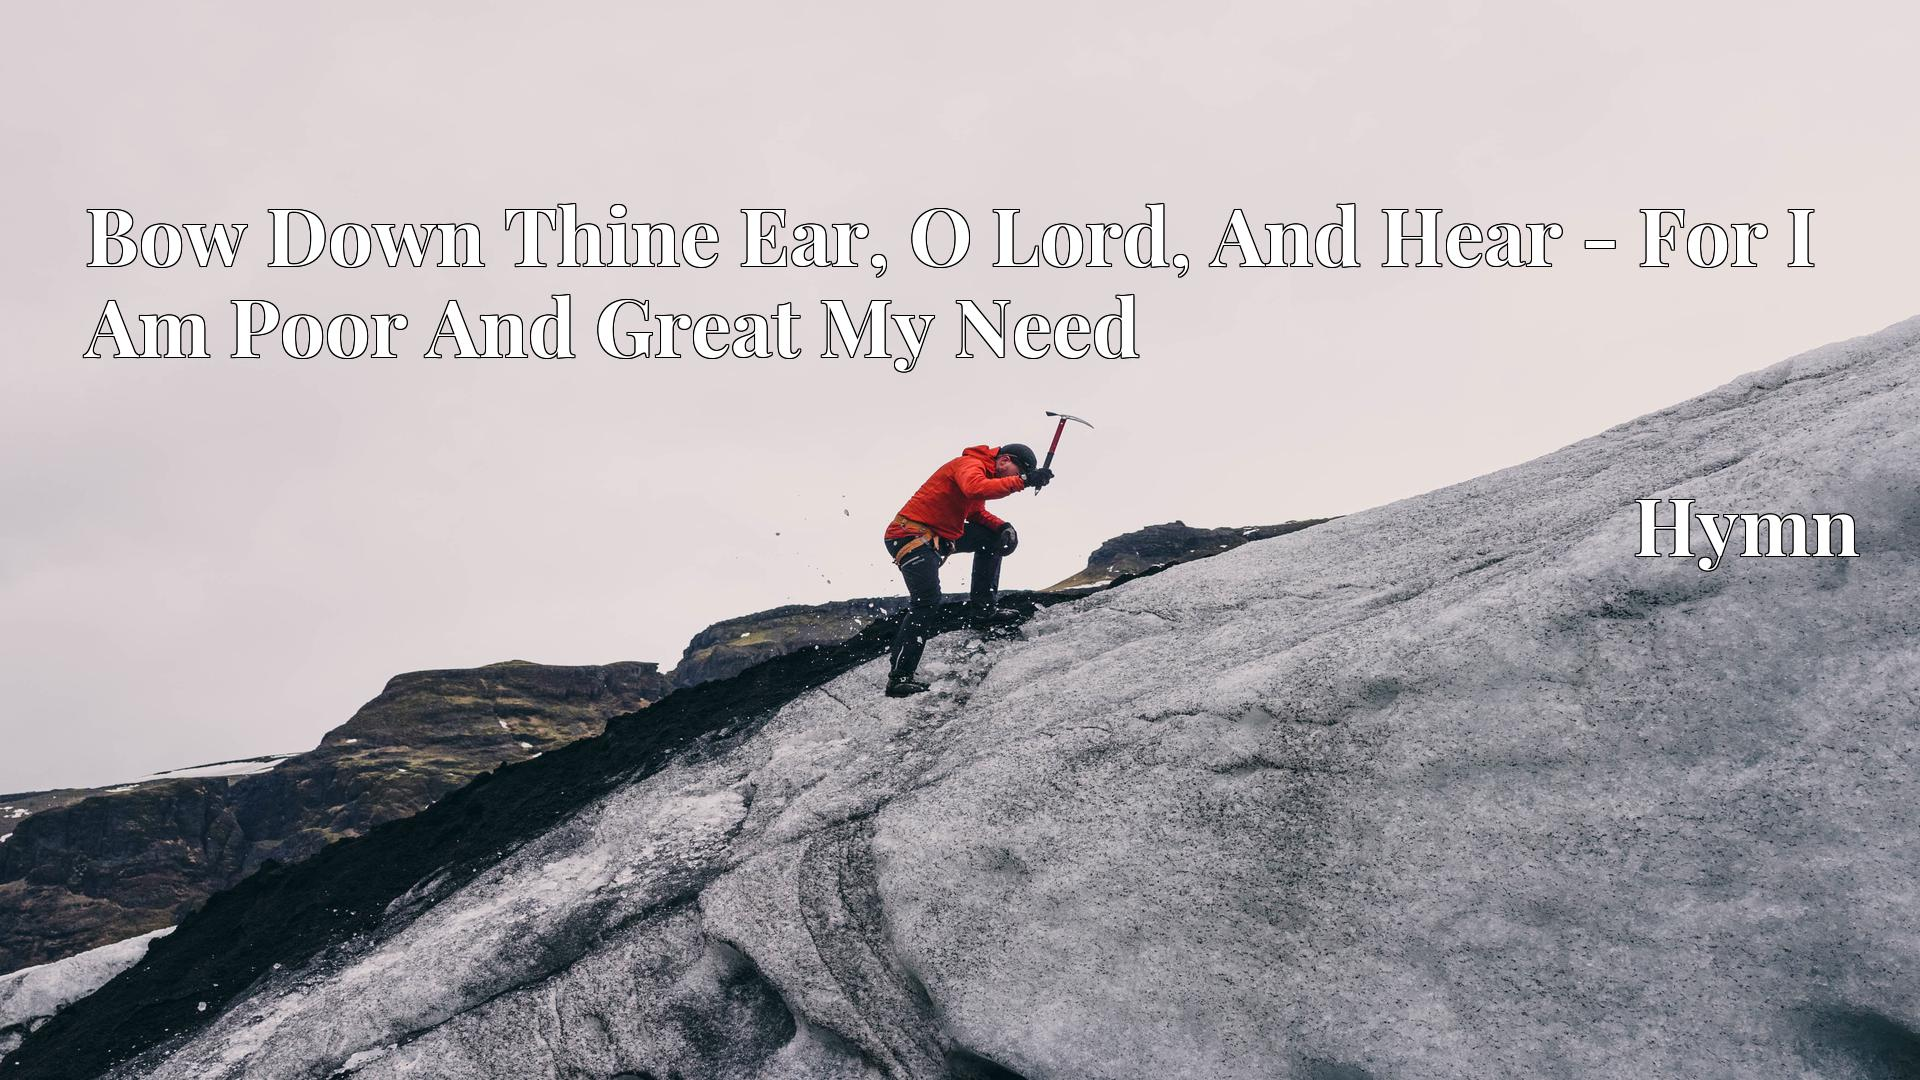 Bow Down Thine Ear, O Lord, And Hear - For I Am Poor And Great My Need - Hymn